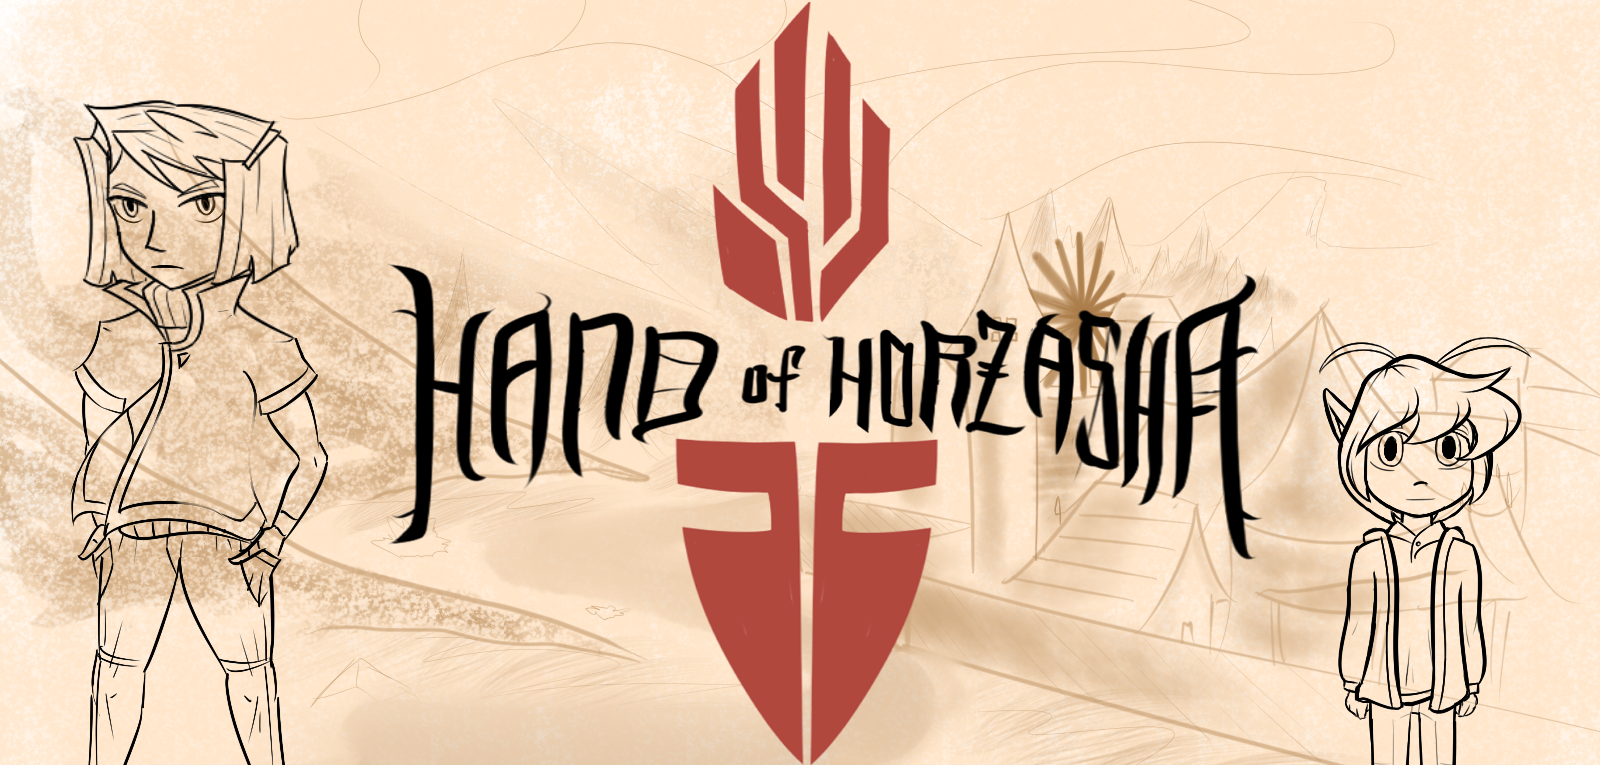 Hand of Horzasha